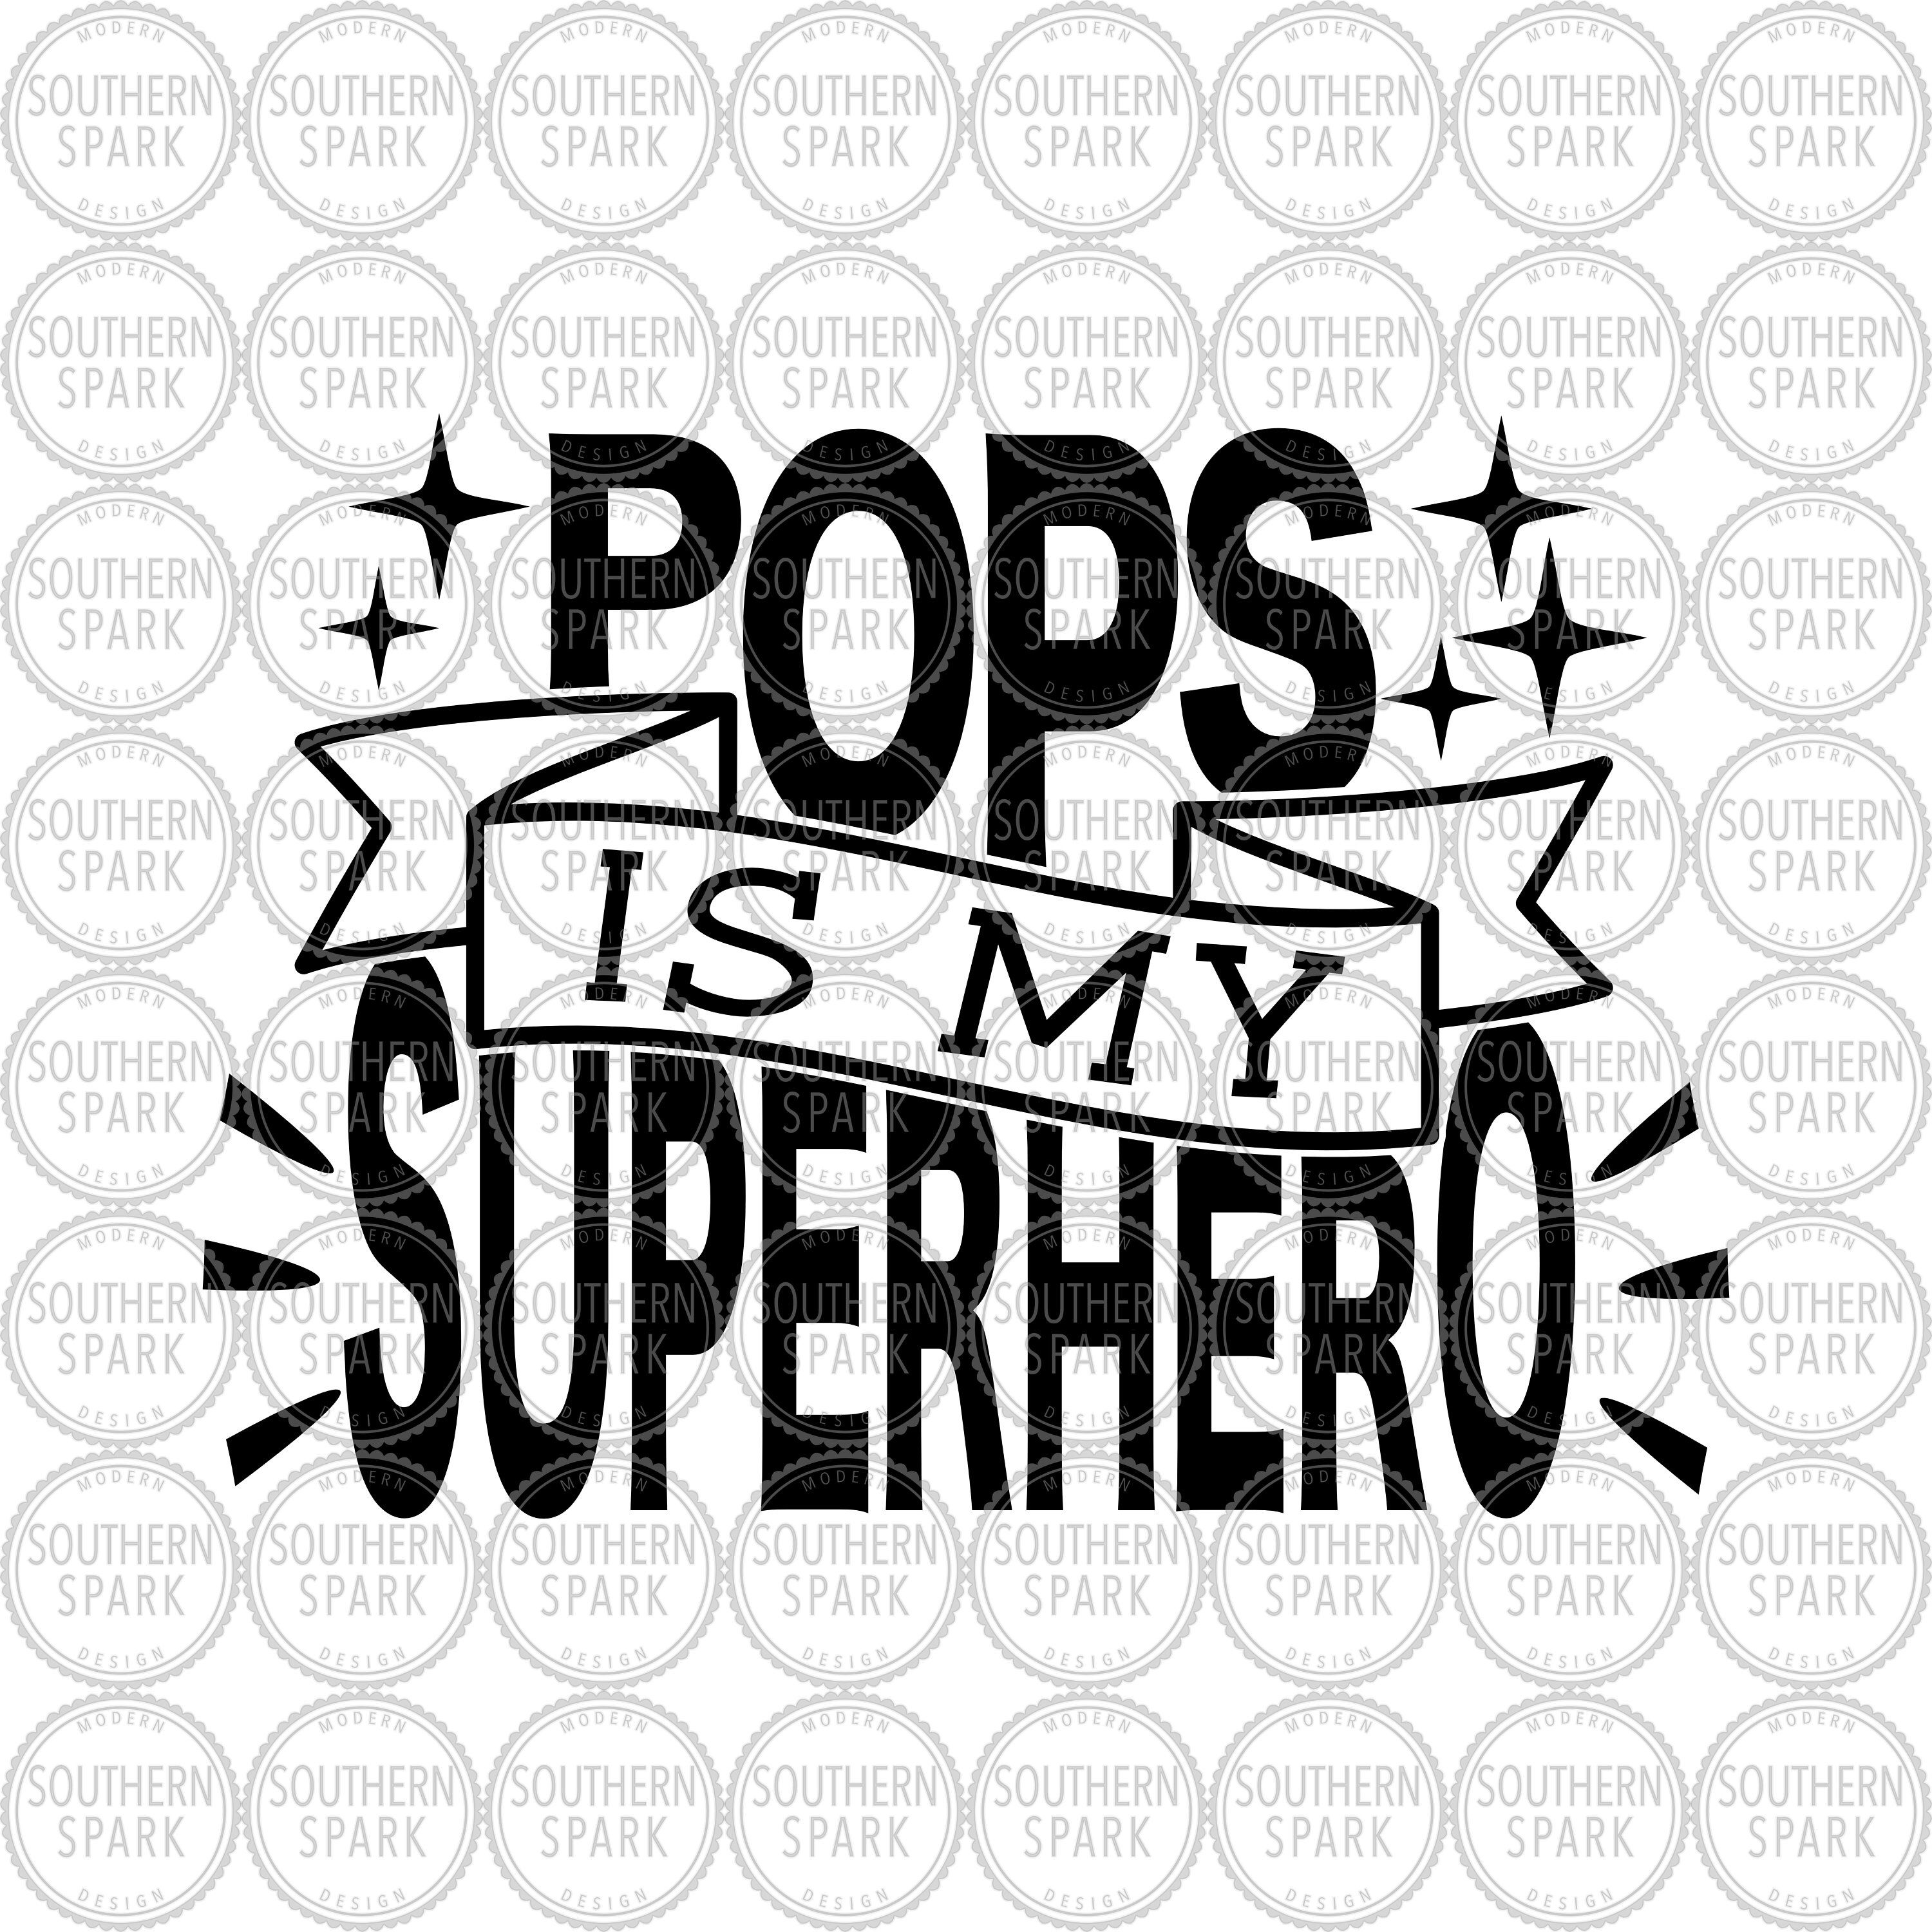 Free 15 superhero svg fathers day professional designs for business and education. Father S Day Svg Pops Is My Superhero Svg Pops Svg Etsy My Superhero Svg Superhero SVG, PNG, EPS, DXF File